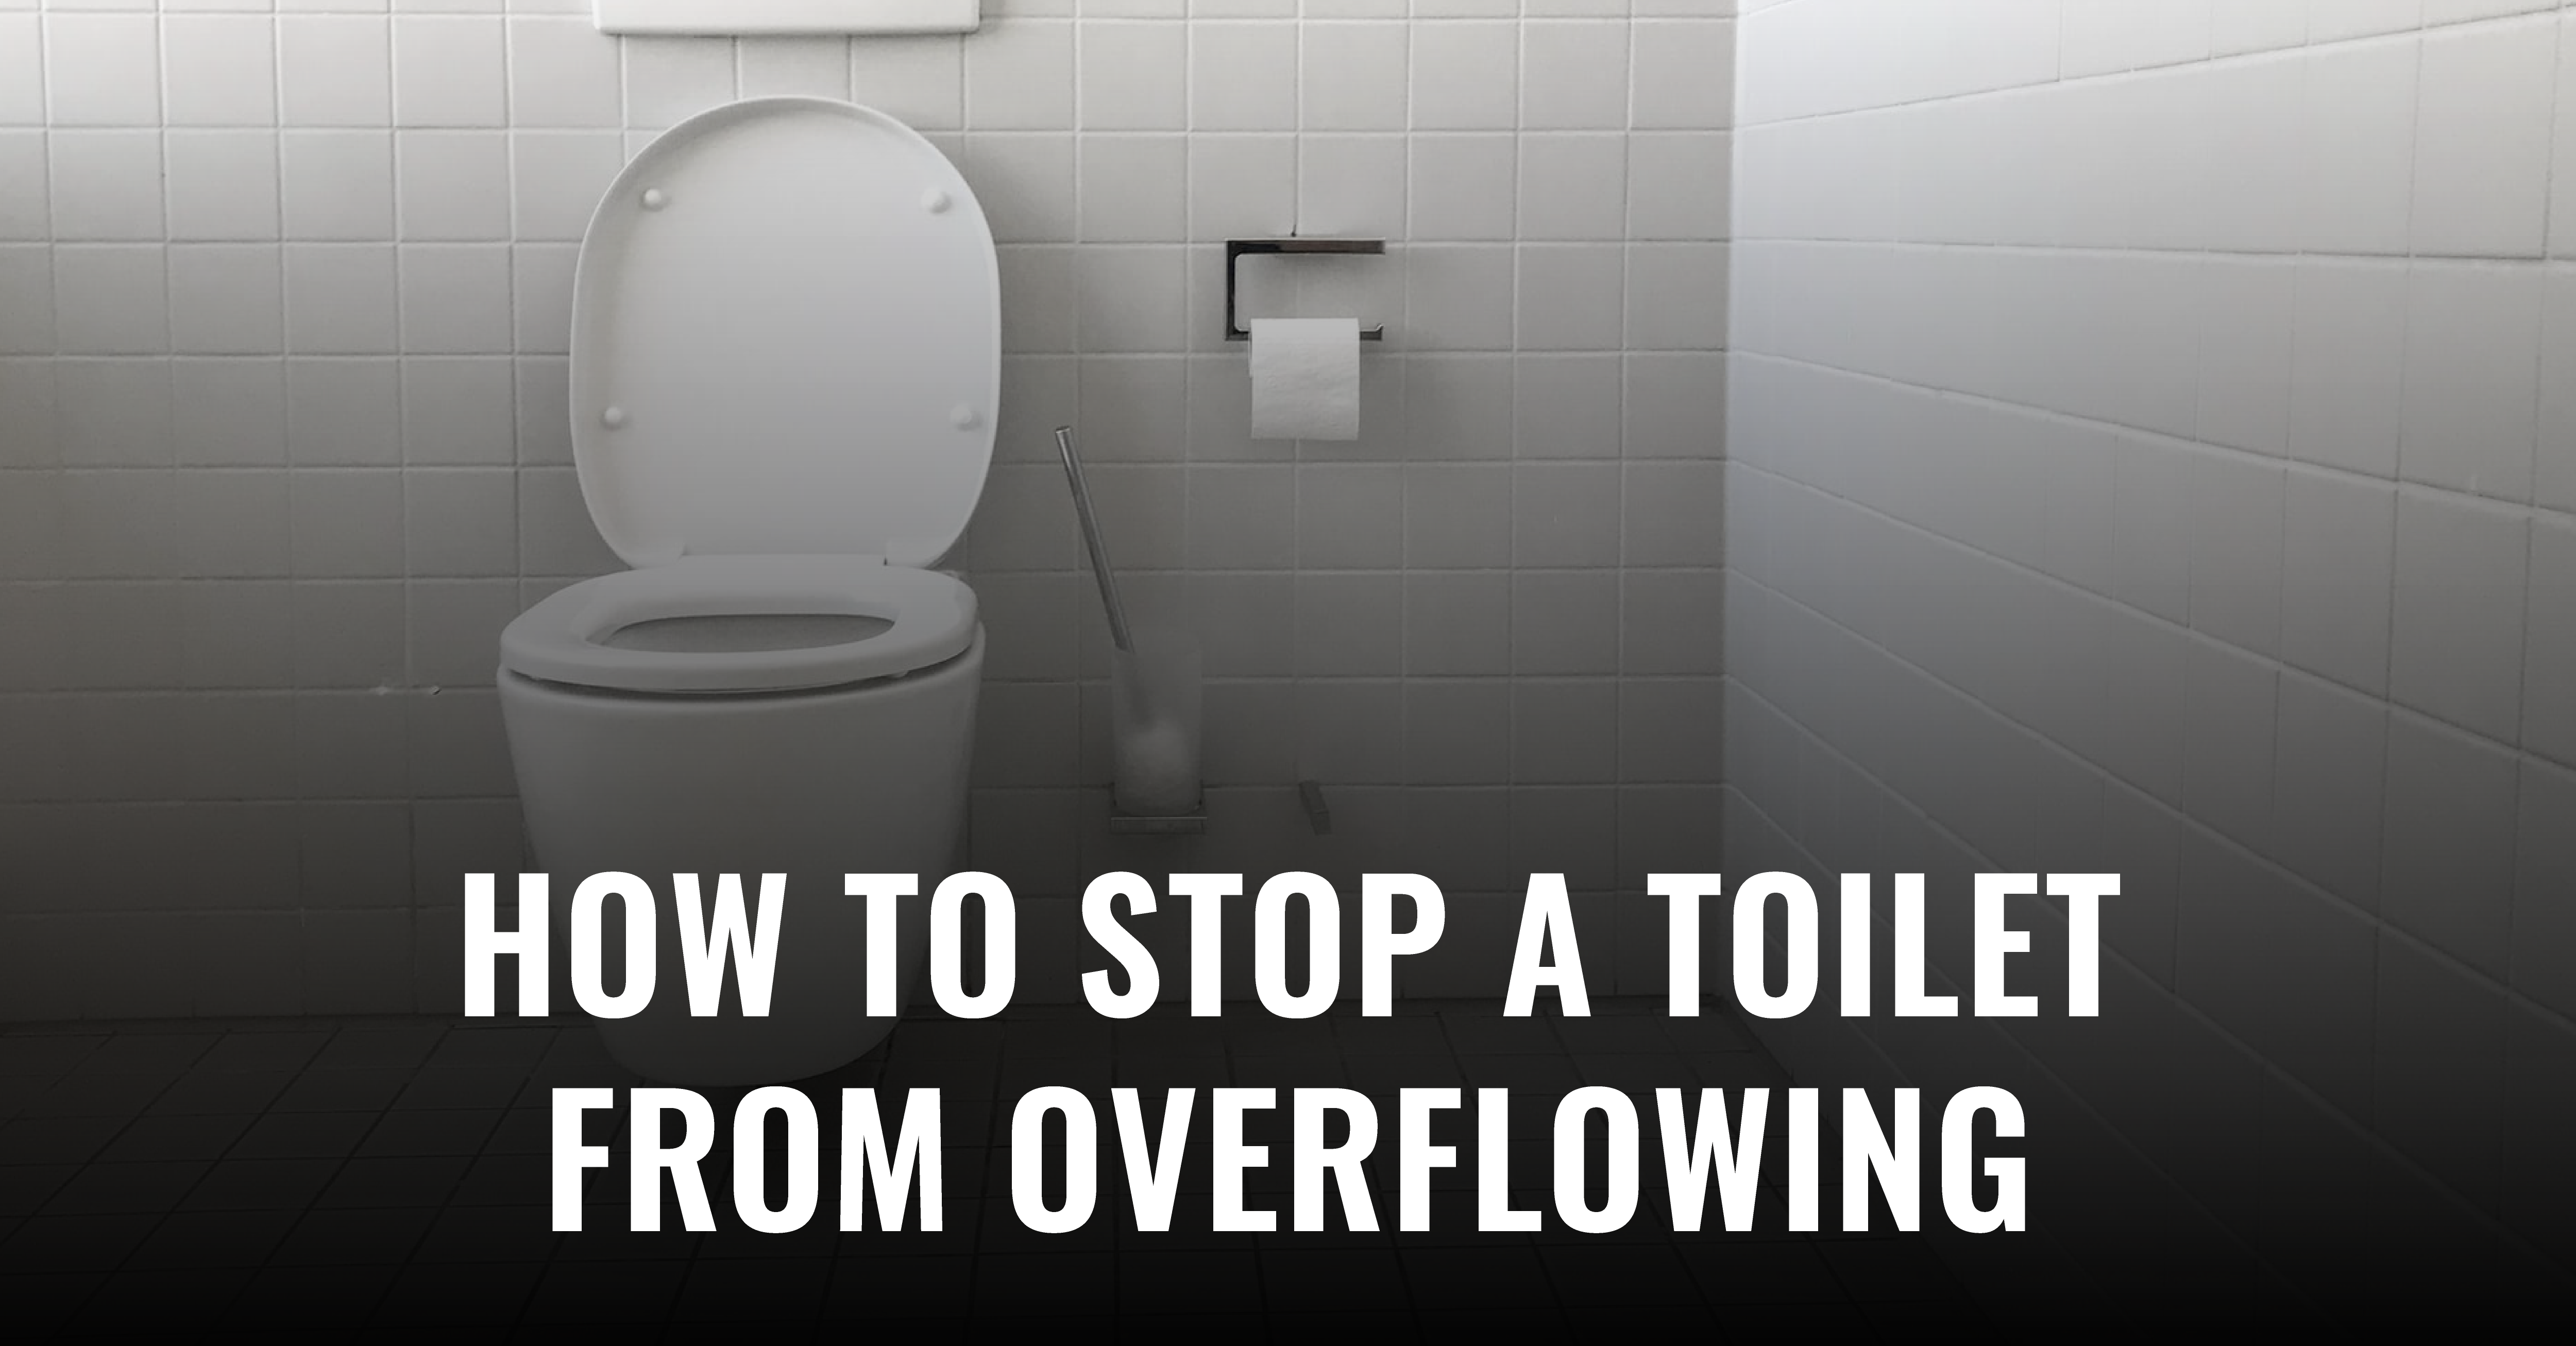 How To Stop A Toilet From Overflowing